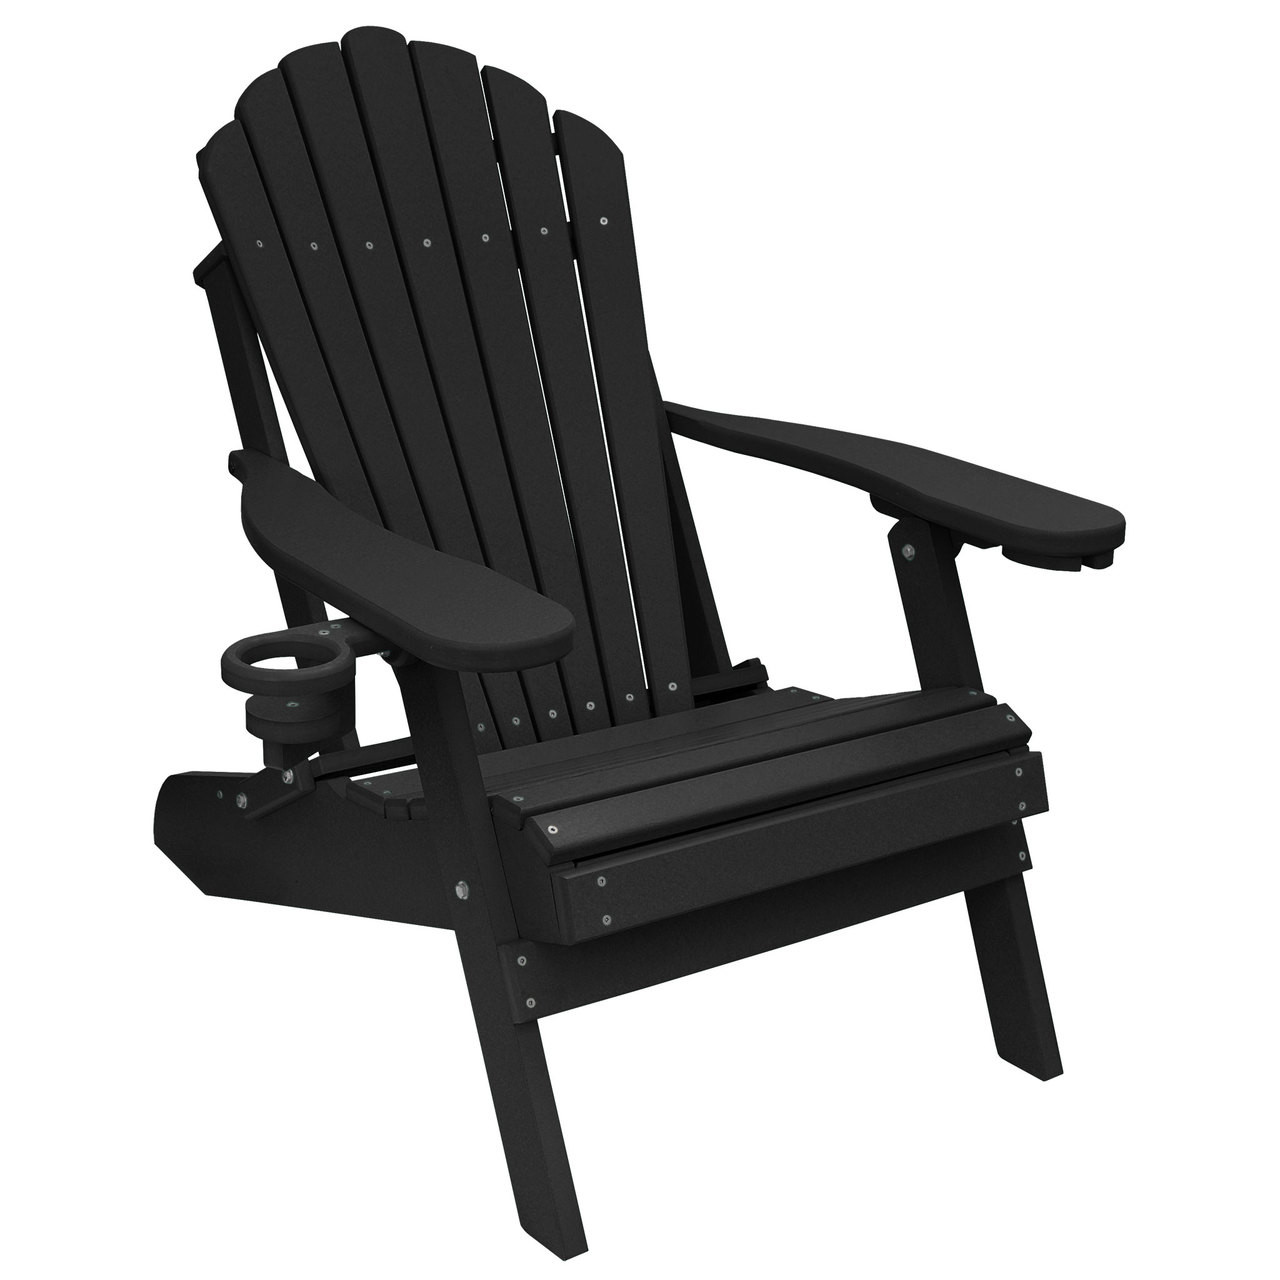 Weatherproof Adirondack Chairs Outer Banks Deluxe Oversized Poly Lumber Folding Adirondack Chair With Cup Holders Available In 18 Colors